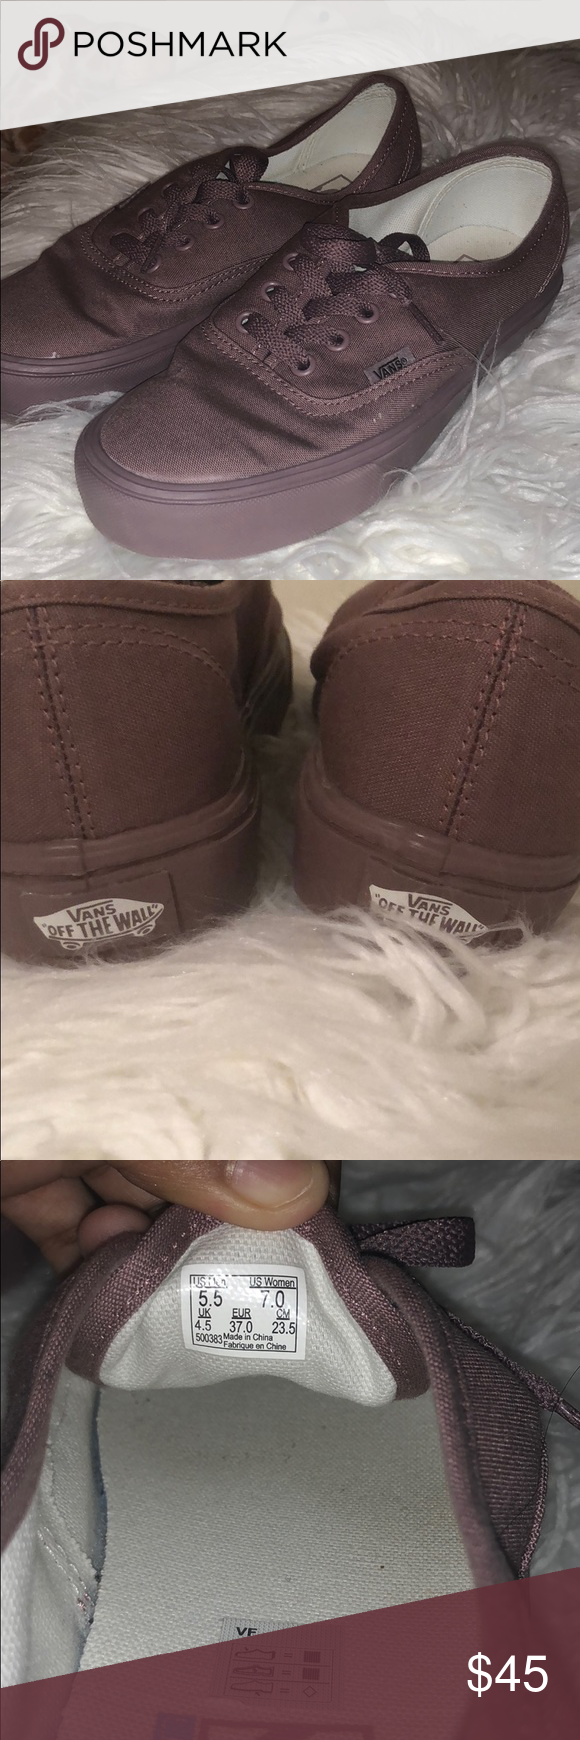 6a3e19f4ad Vans Ultracrush Authentic. Only used once. VANS Authentic Lite (Mono) Mauve Mauve  Purple UltraCush Out Of Stock in the Van s Website Vans Shoes Sneakers